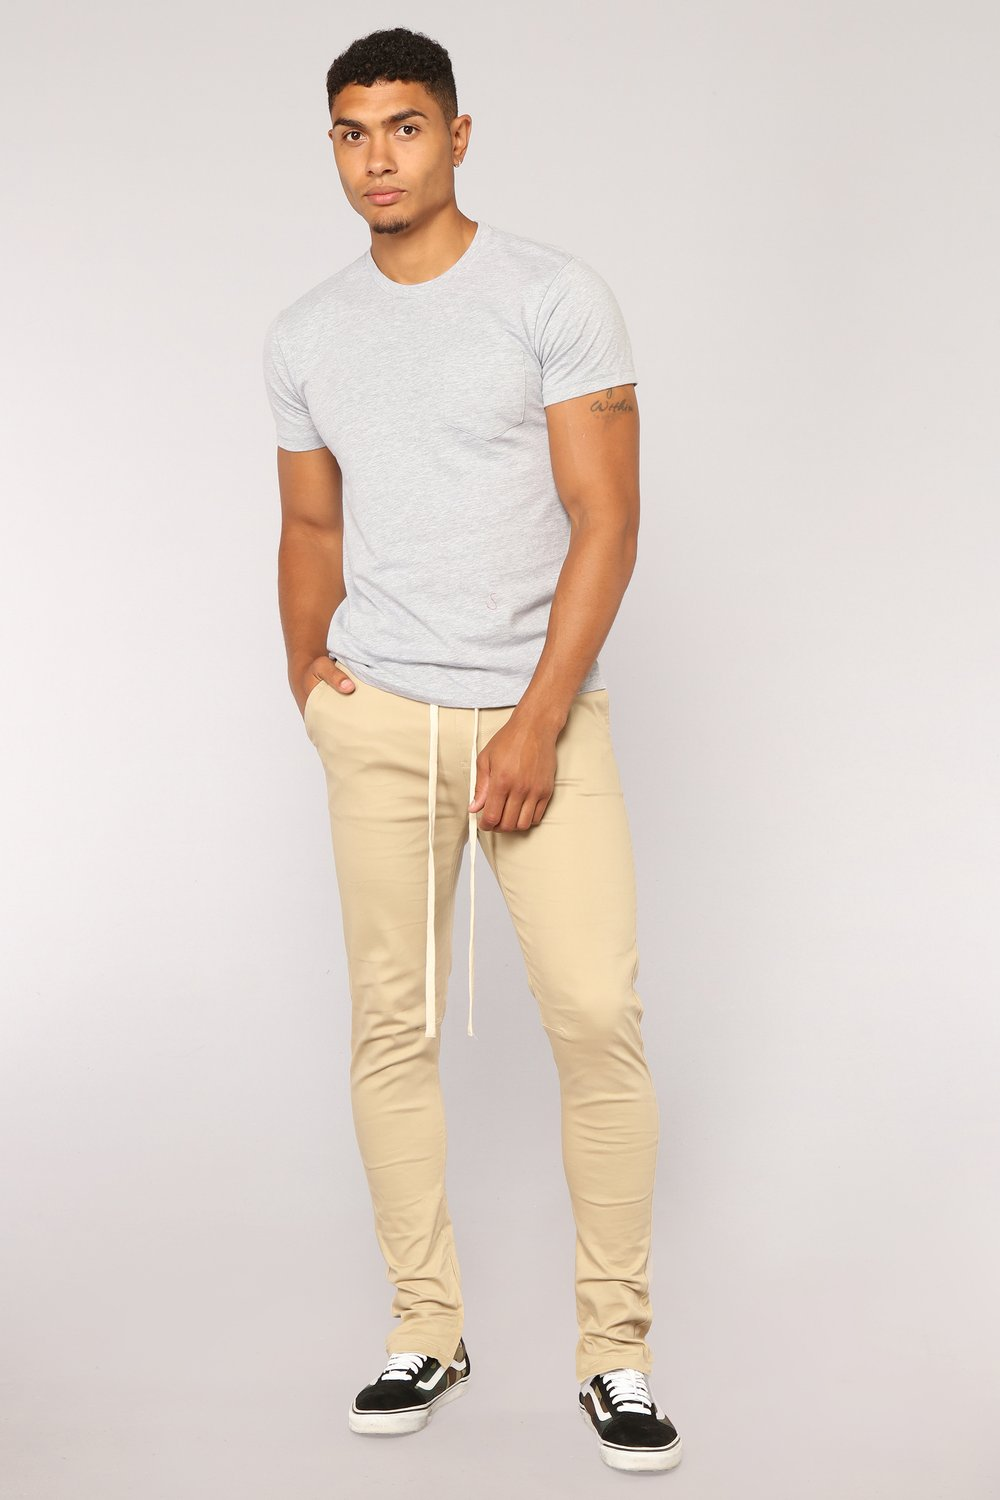 A Look At Fashion Nova\u0027s First Month Of Menswear